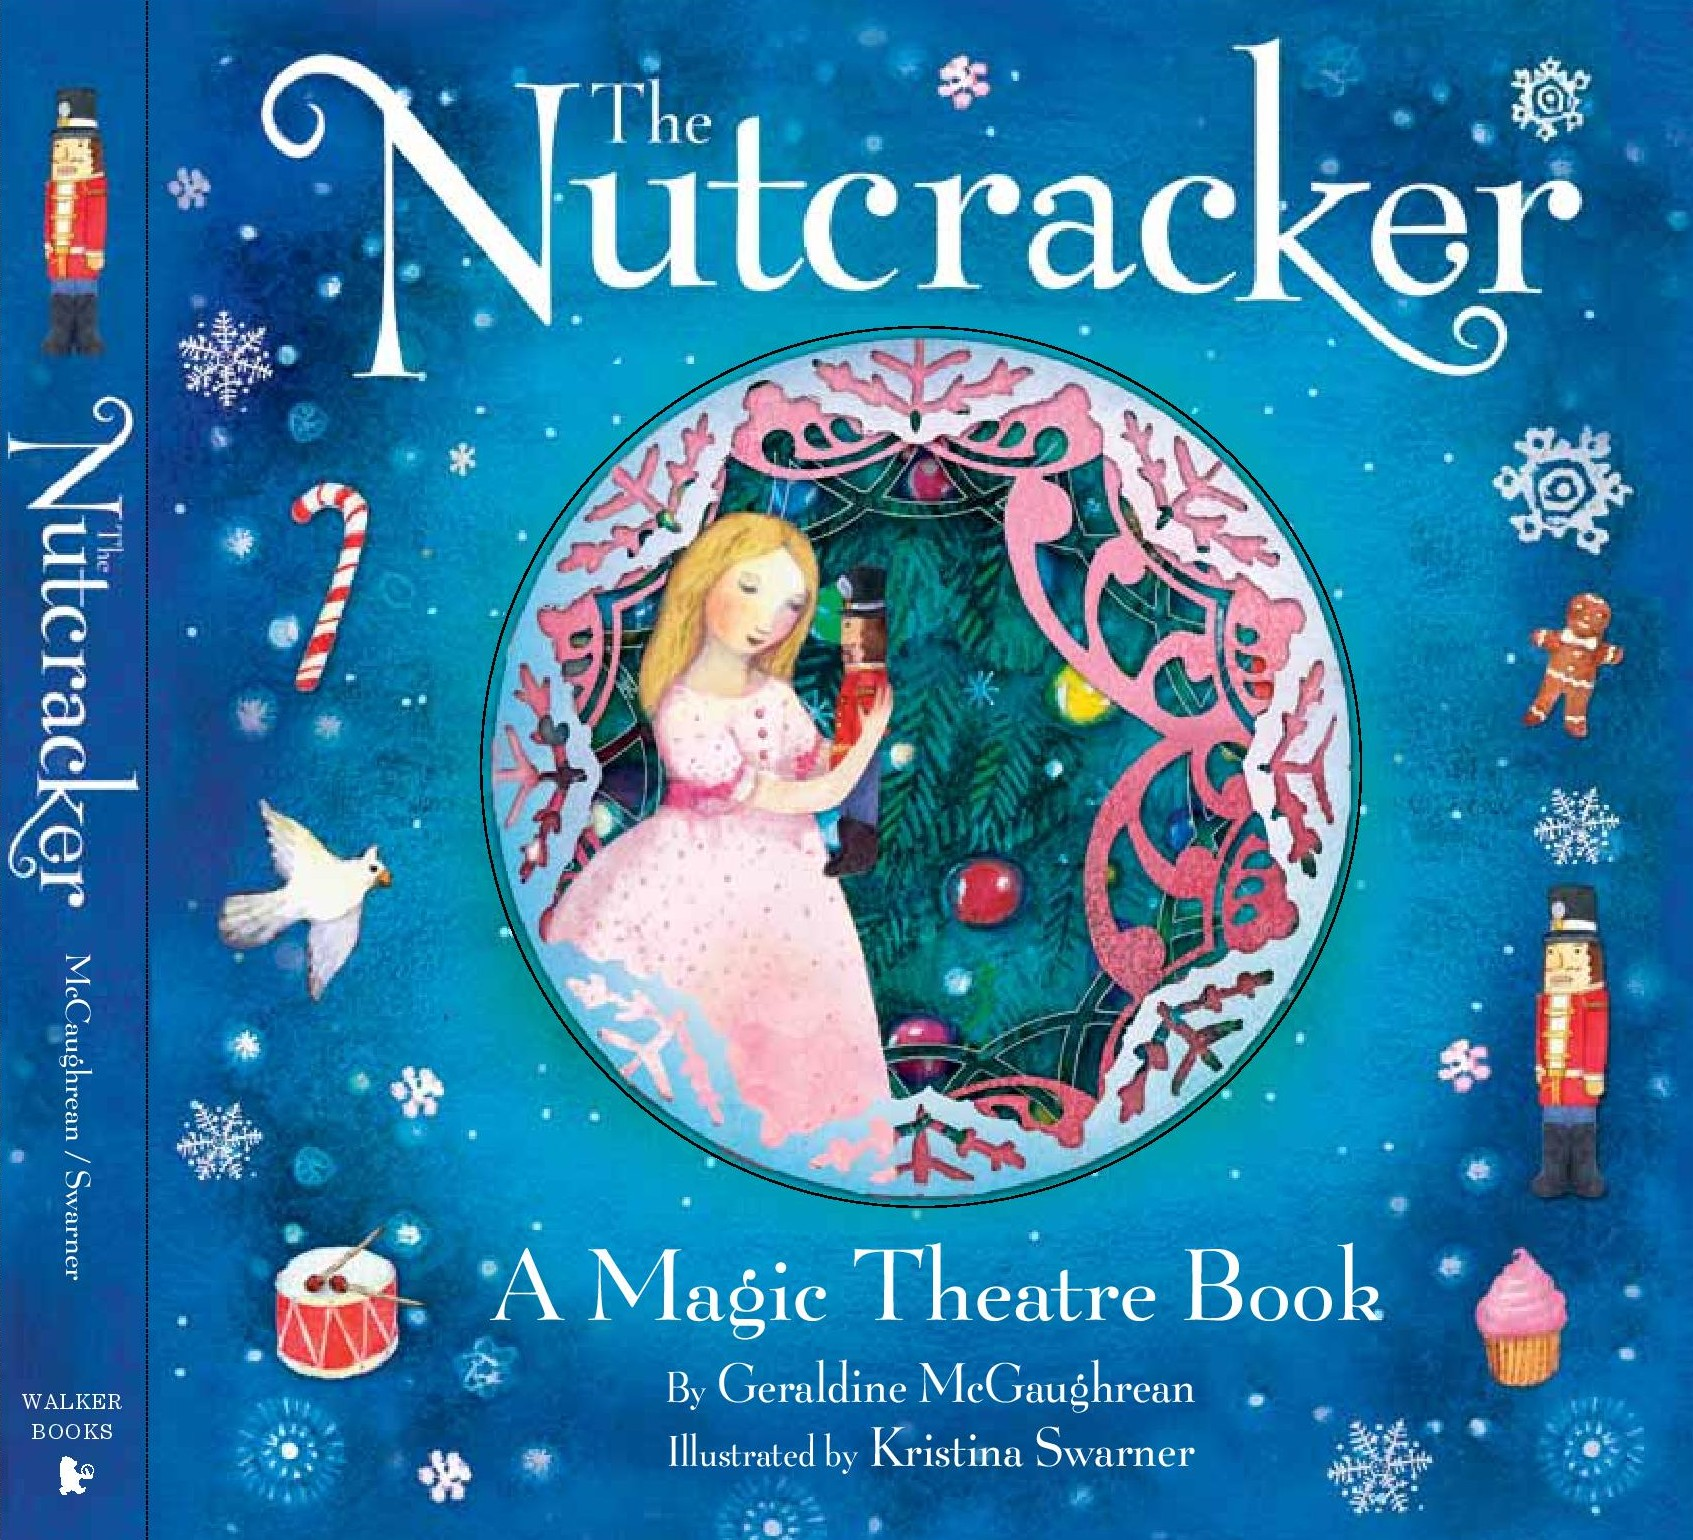 Nutcracker final cover-page-001.jpg